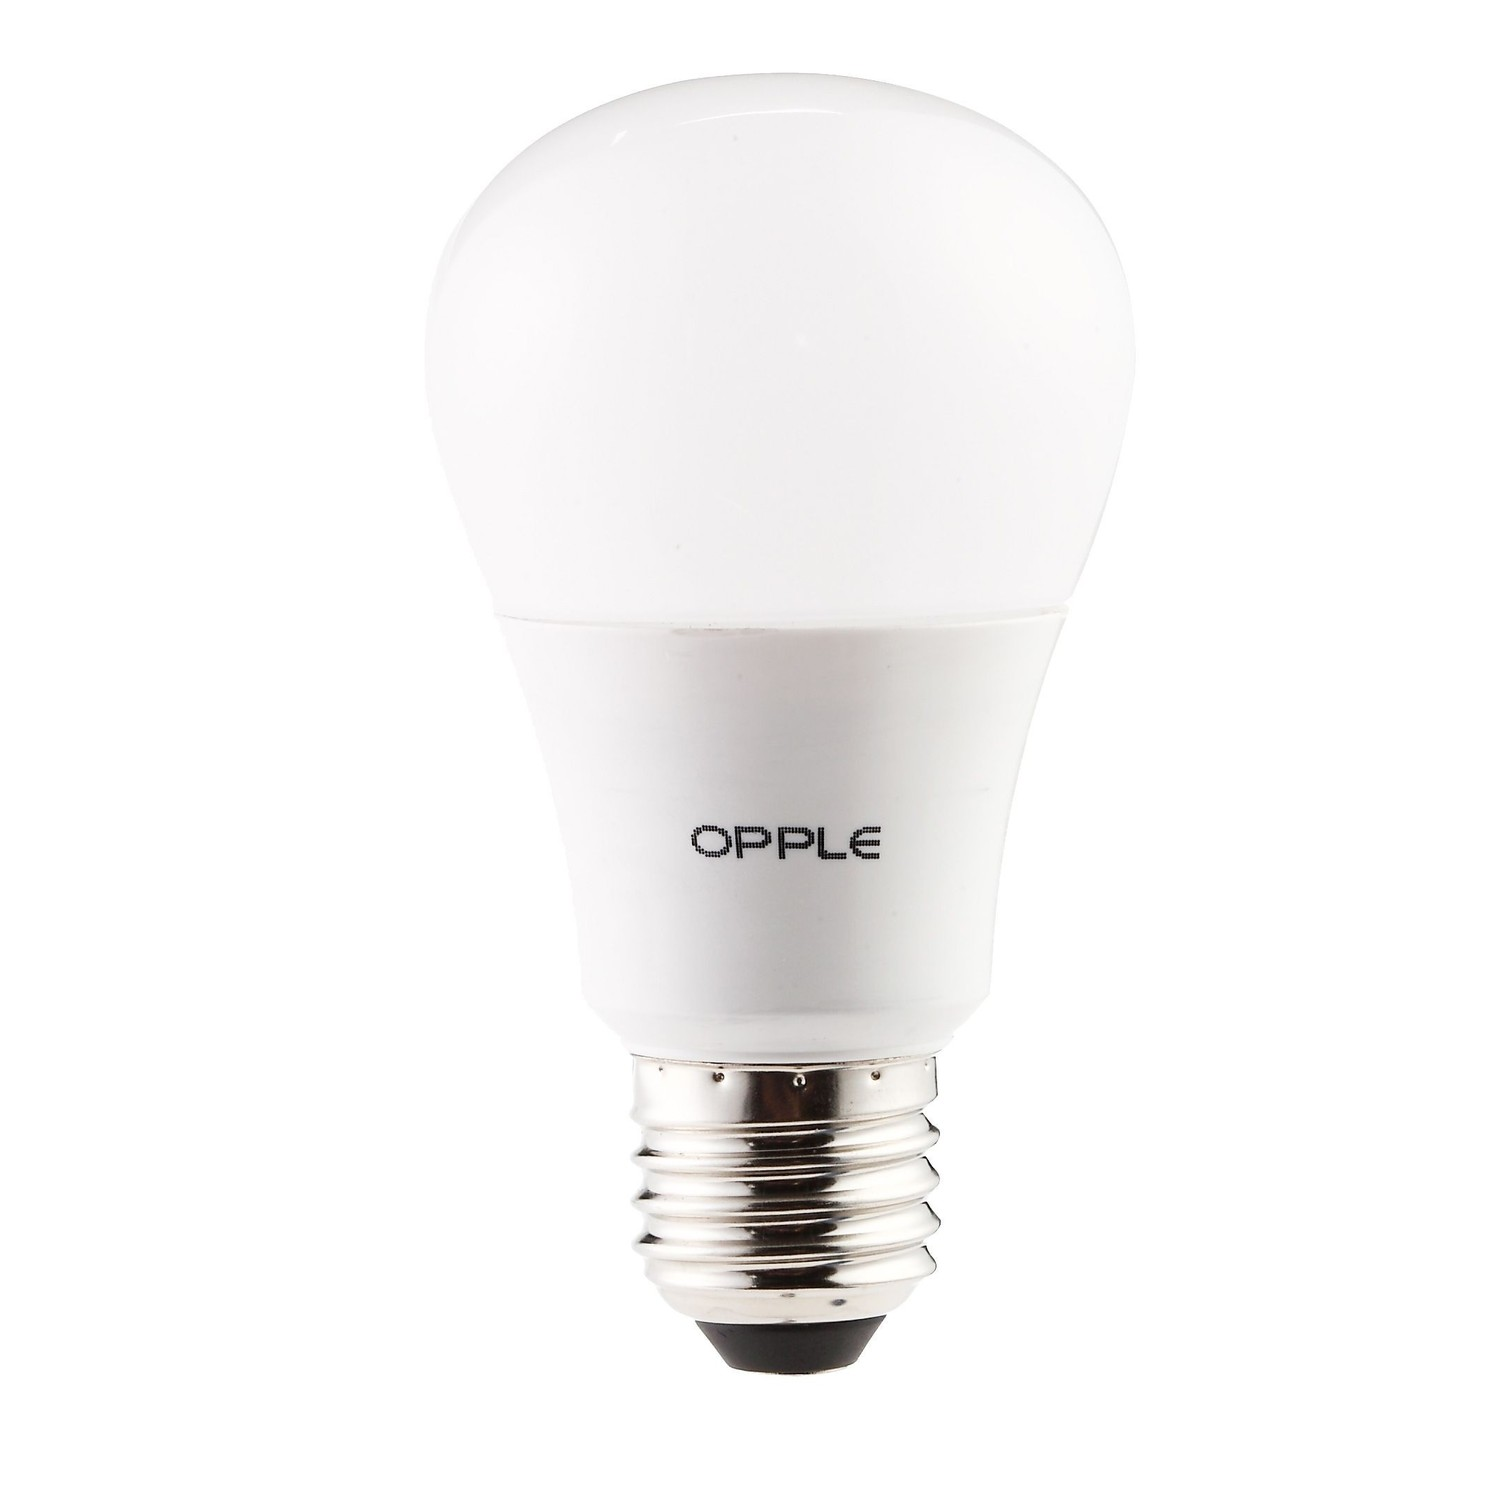 LED Peerlamp Opple E27 3,5W Warm Wit opaal